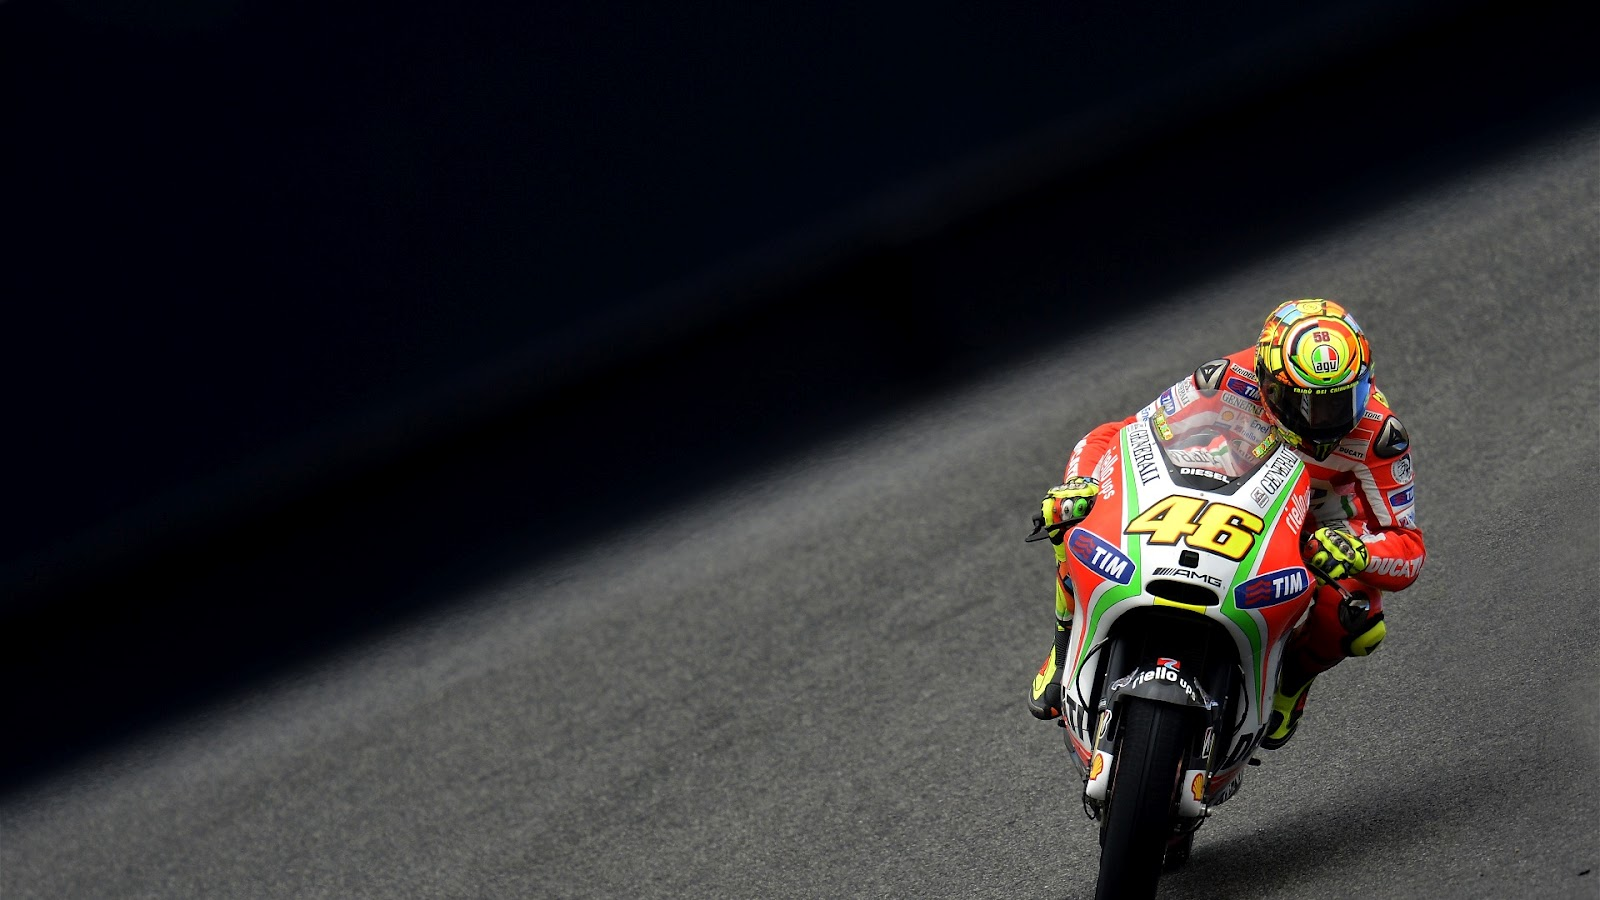 valentino rossi ducati gp12 Valentino Rossi wallpapers in HD